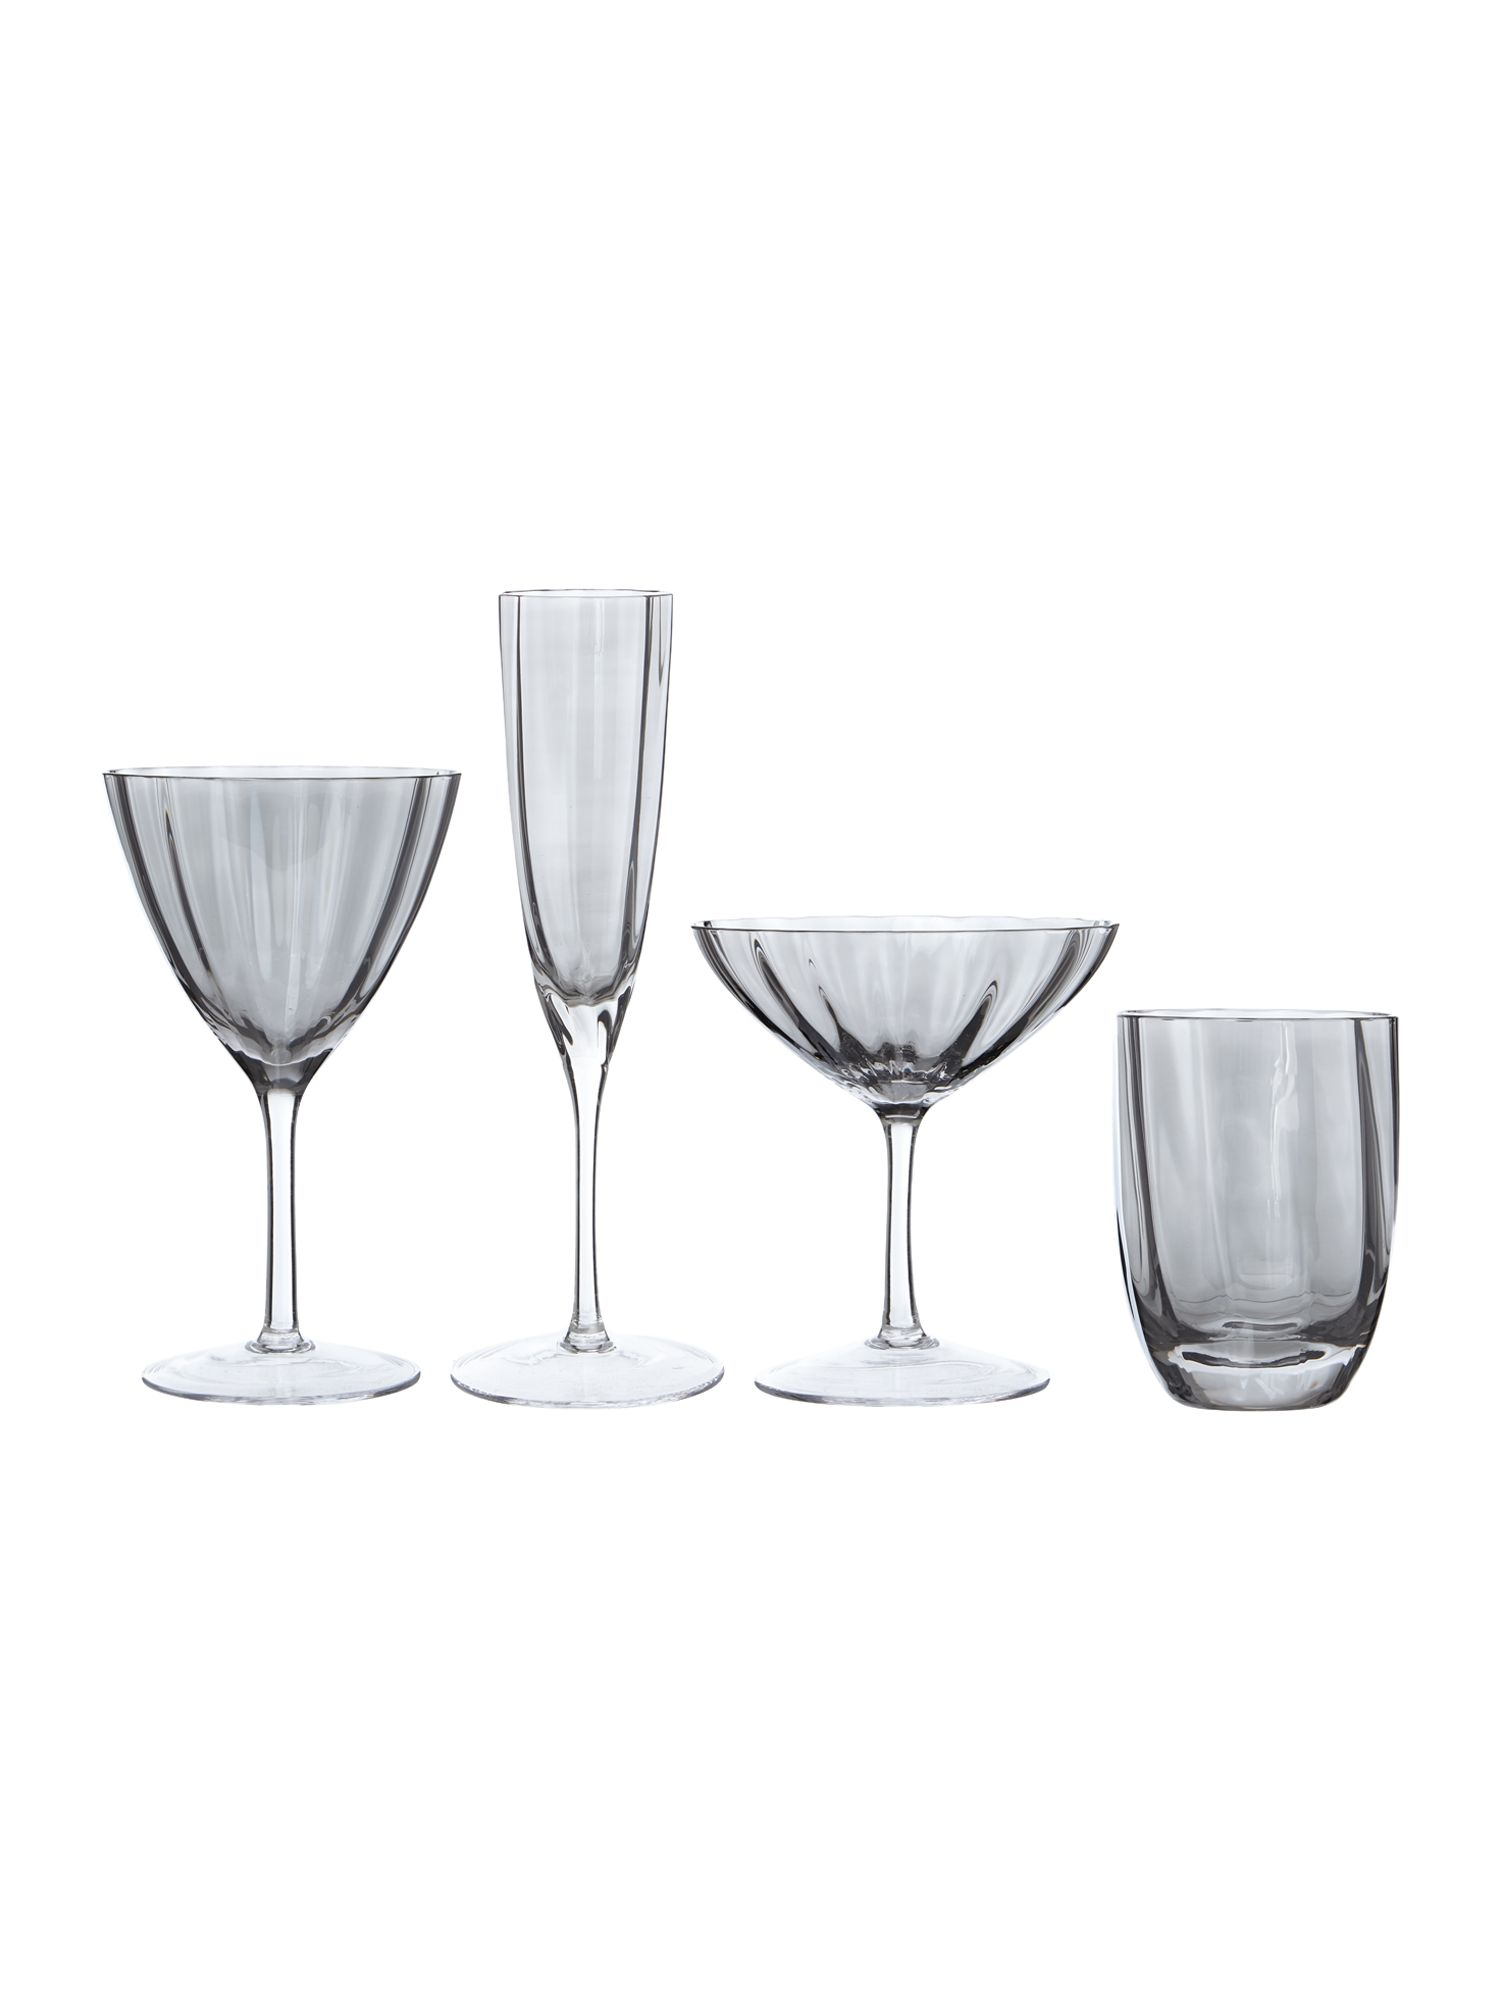 Smoke Optic Glassware